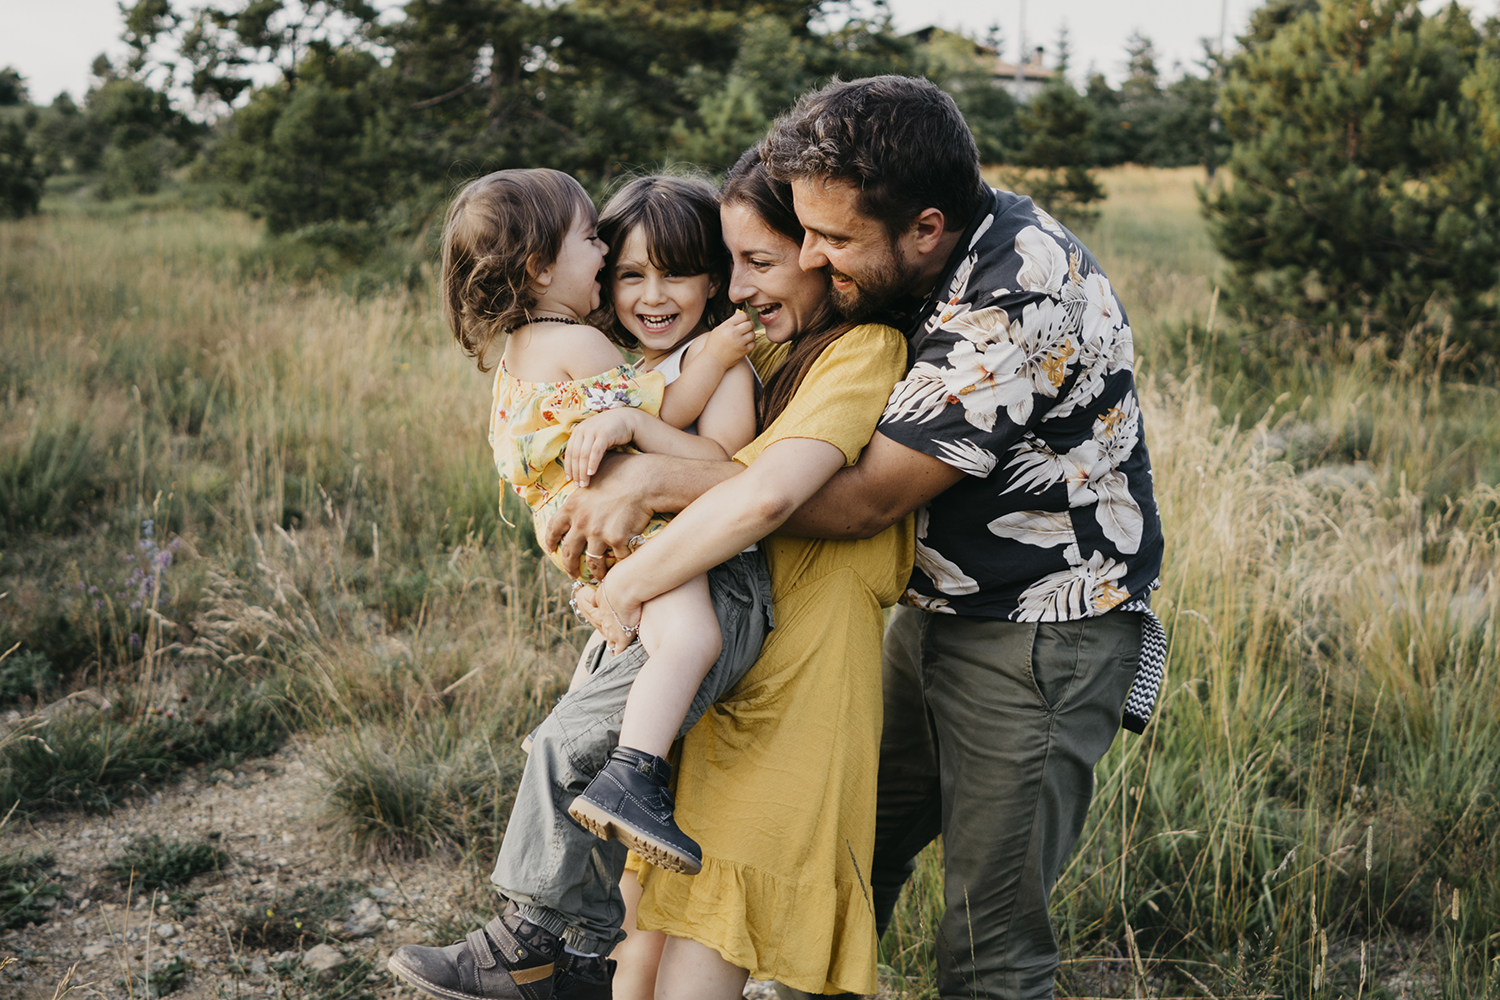 lovephotoexperience. Family outdoor photo session in Genova. Family lifestyle photographer Liguria. Family lifestyle photoshoot. Family photographer in Italy.